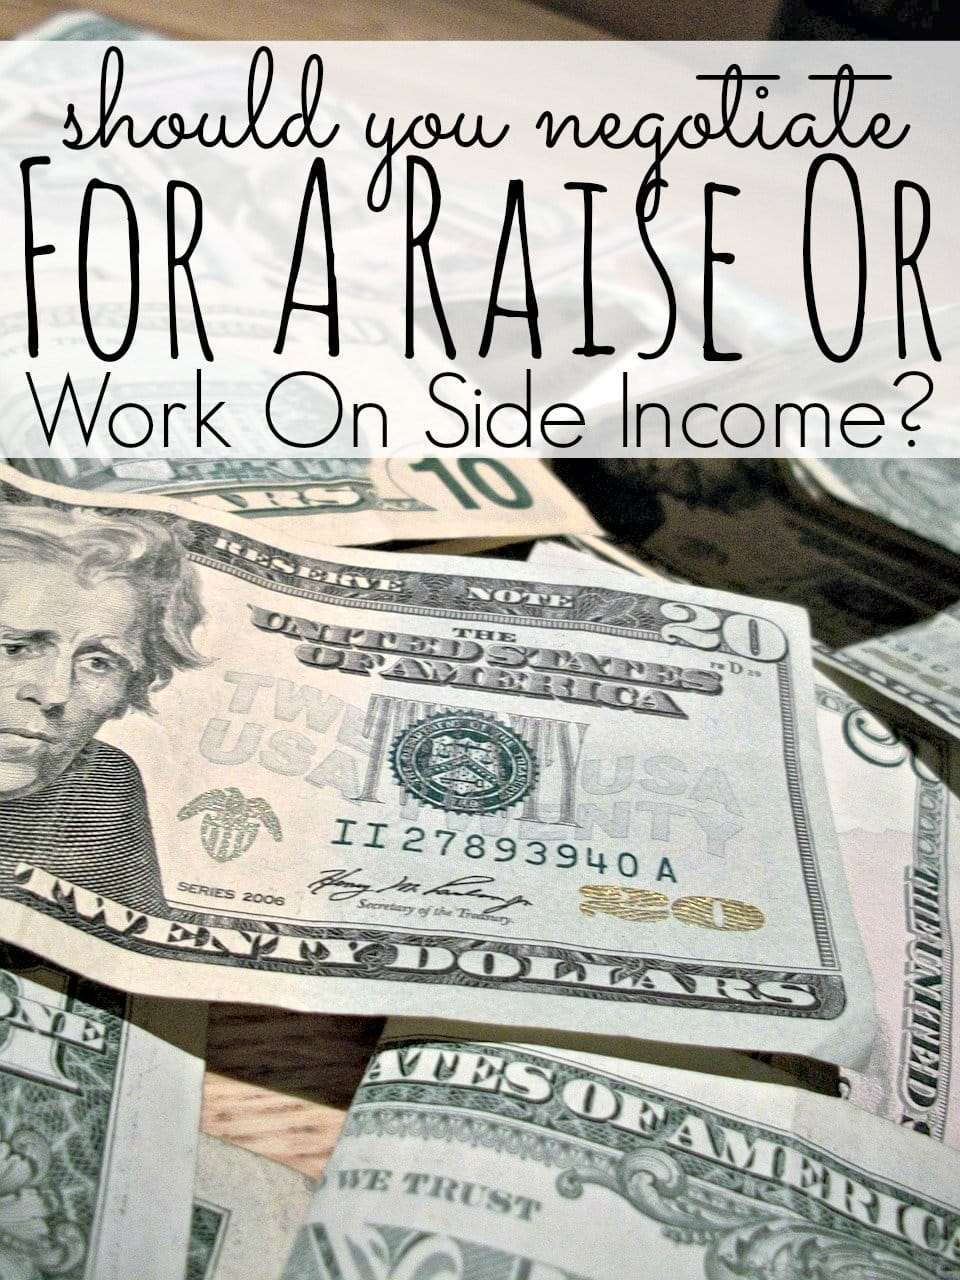 Negotiate For A Raise Or Work On Side Income